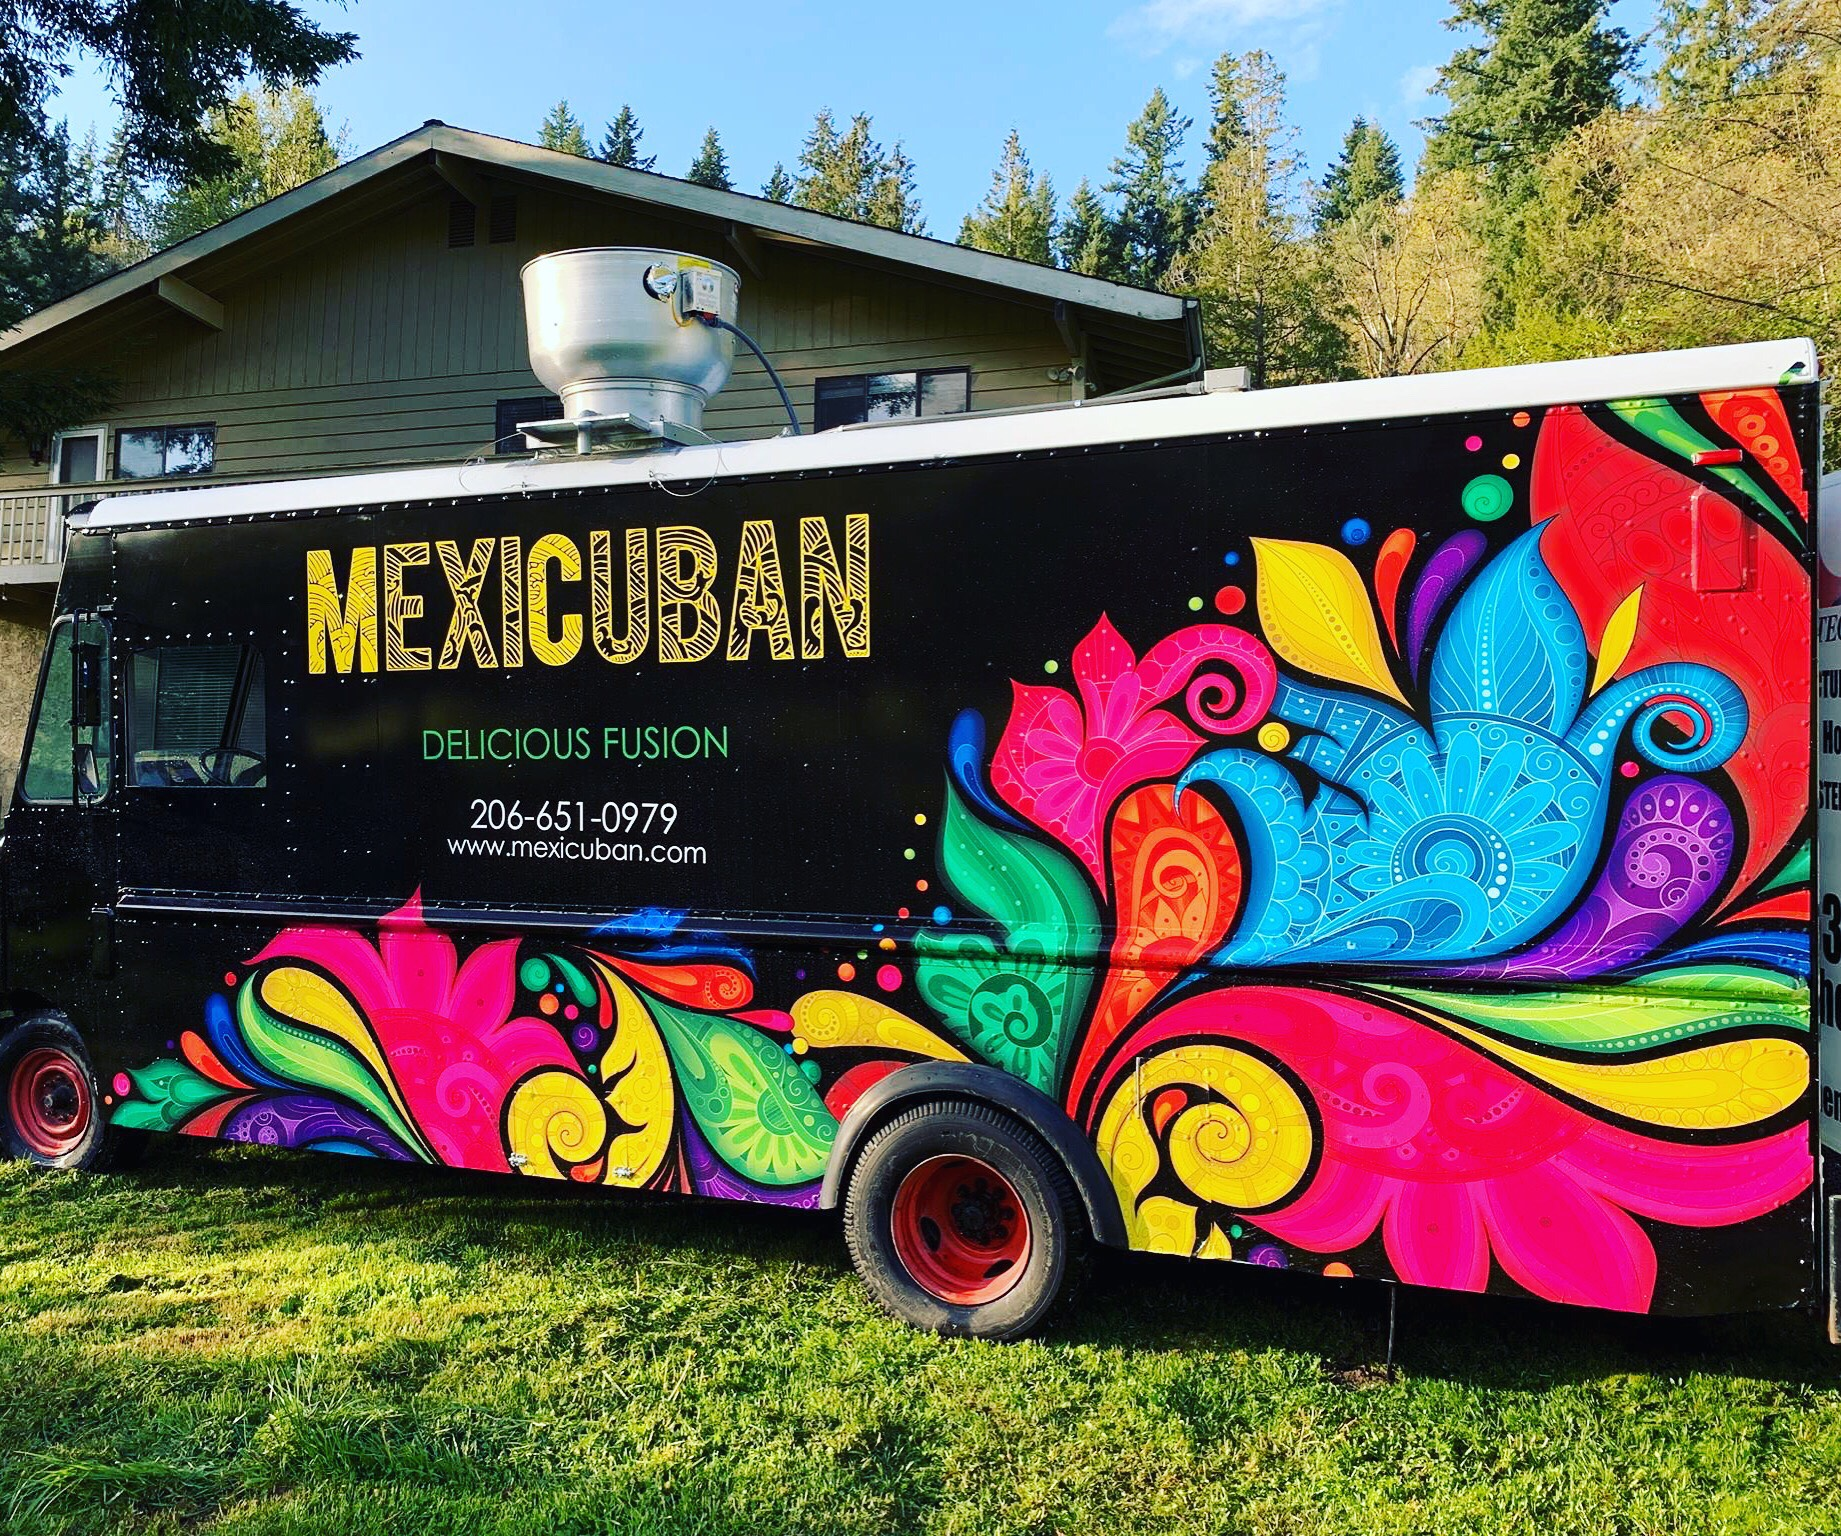 MexiCuban - Find on FacebookEmail: Mexicubantruck@gmail.comPhone: (206) 651-0979Available for cateringAlso serves in: Renton, Seattle & Issaquah